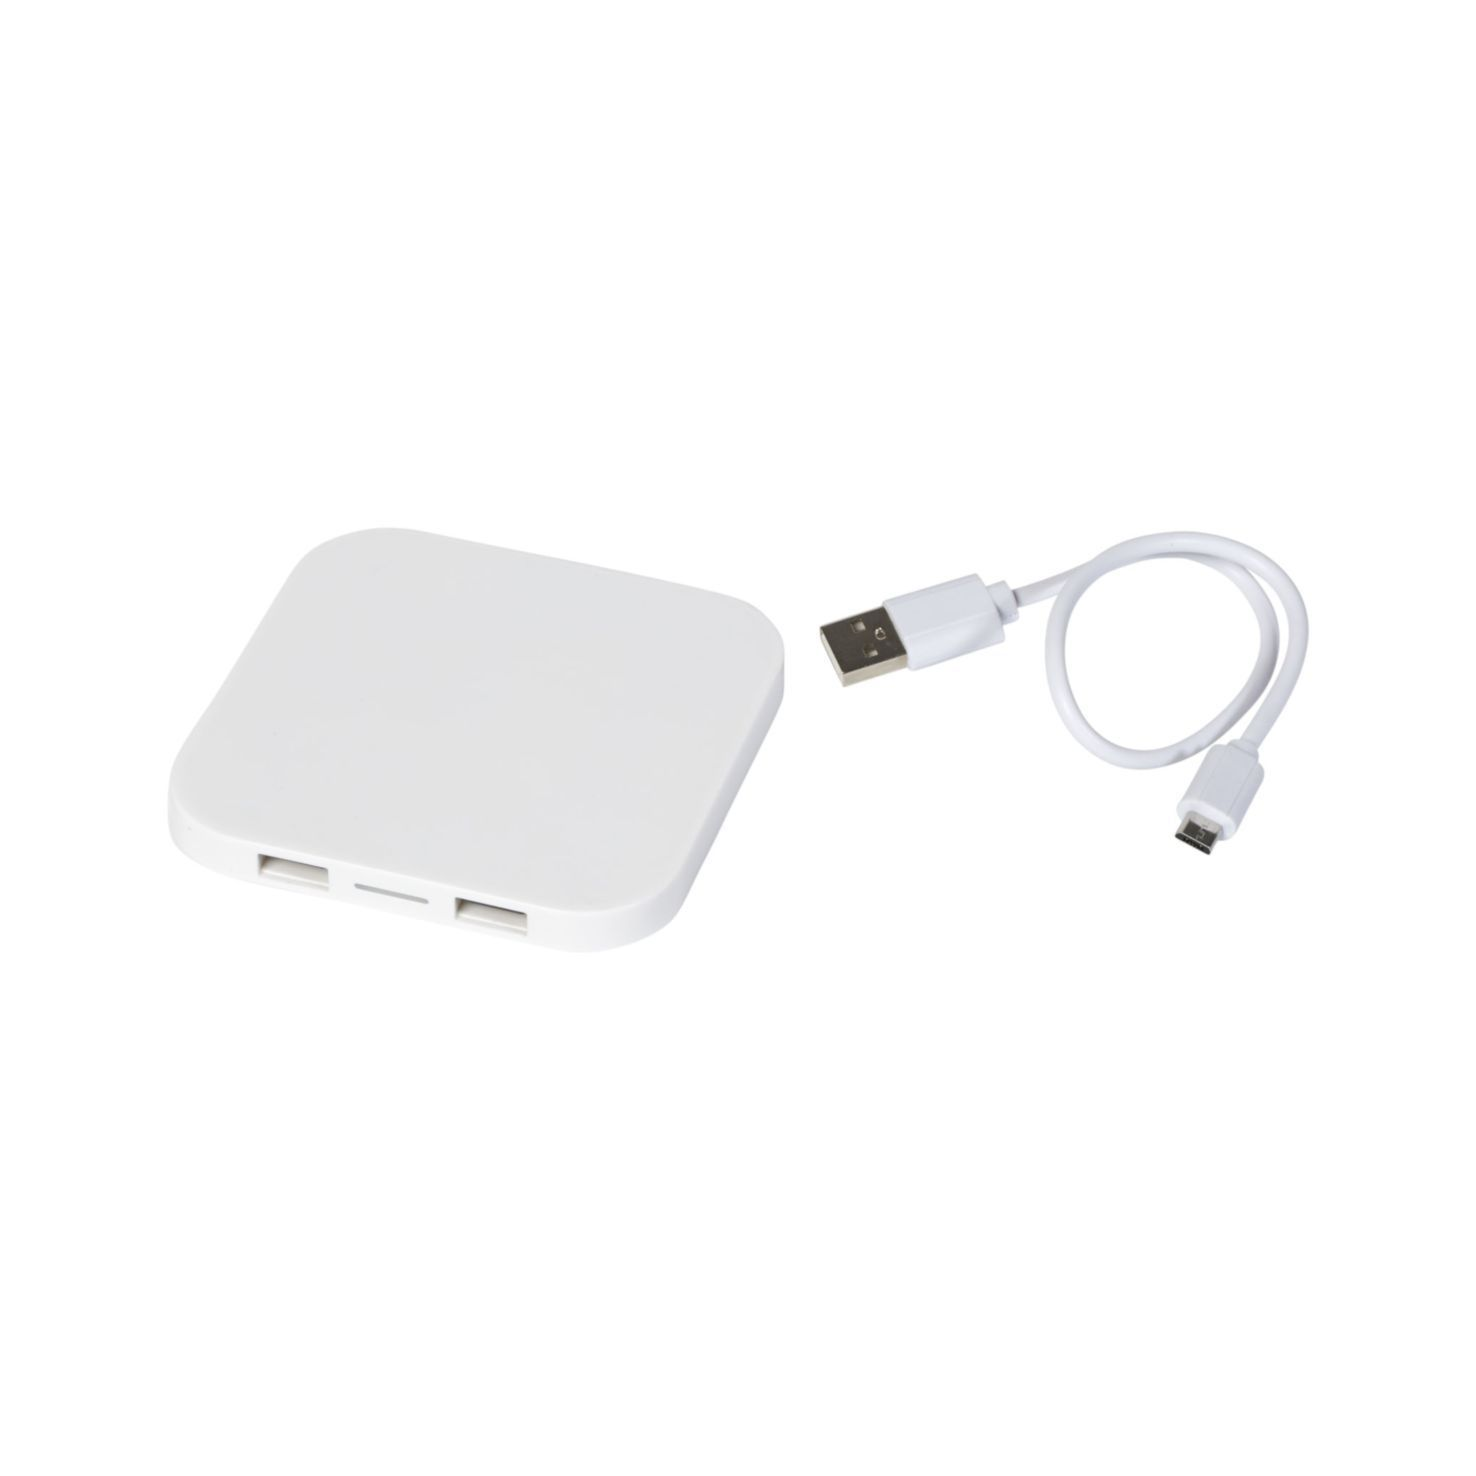 Witte Wireless Charger | 2 USB poorten